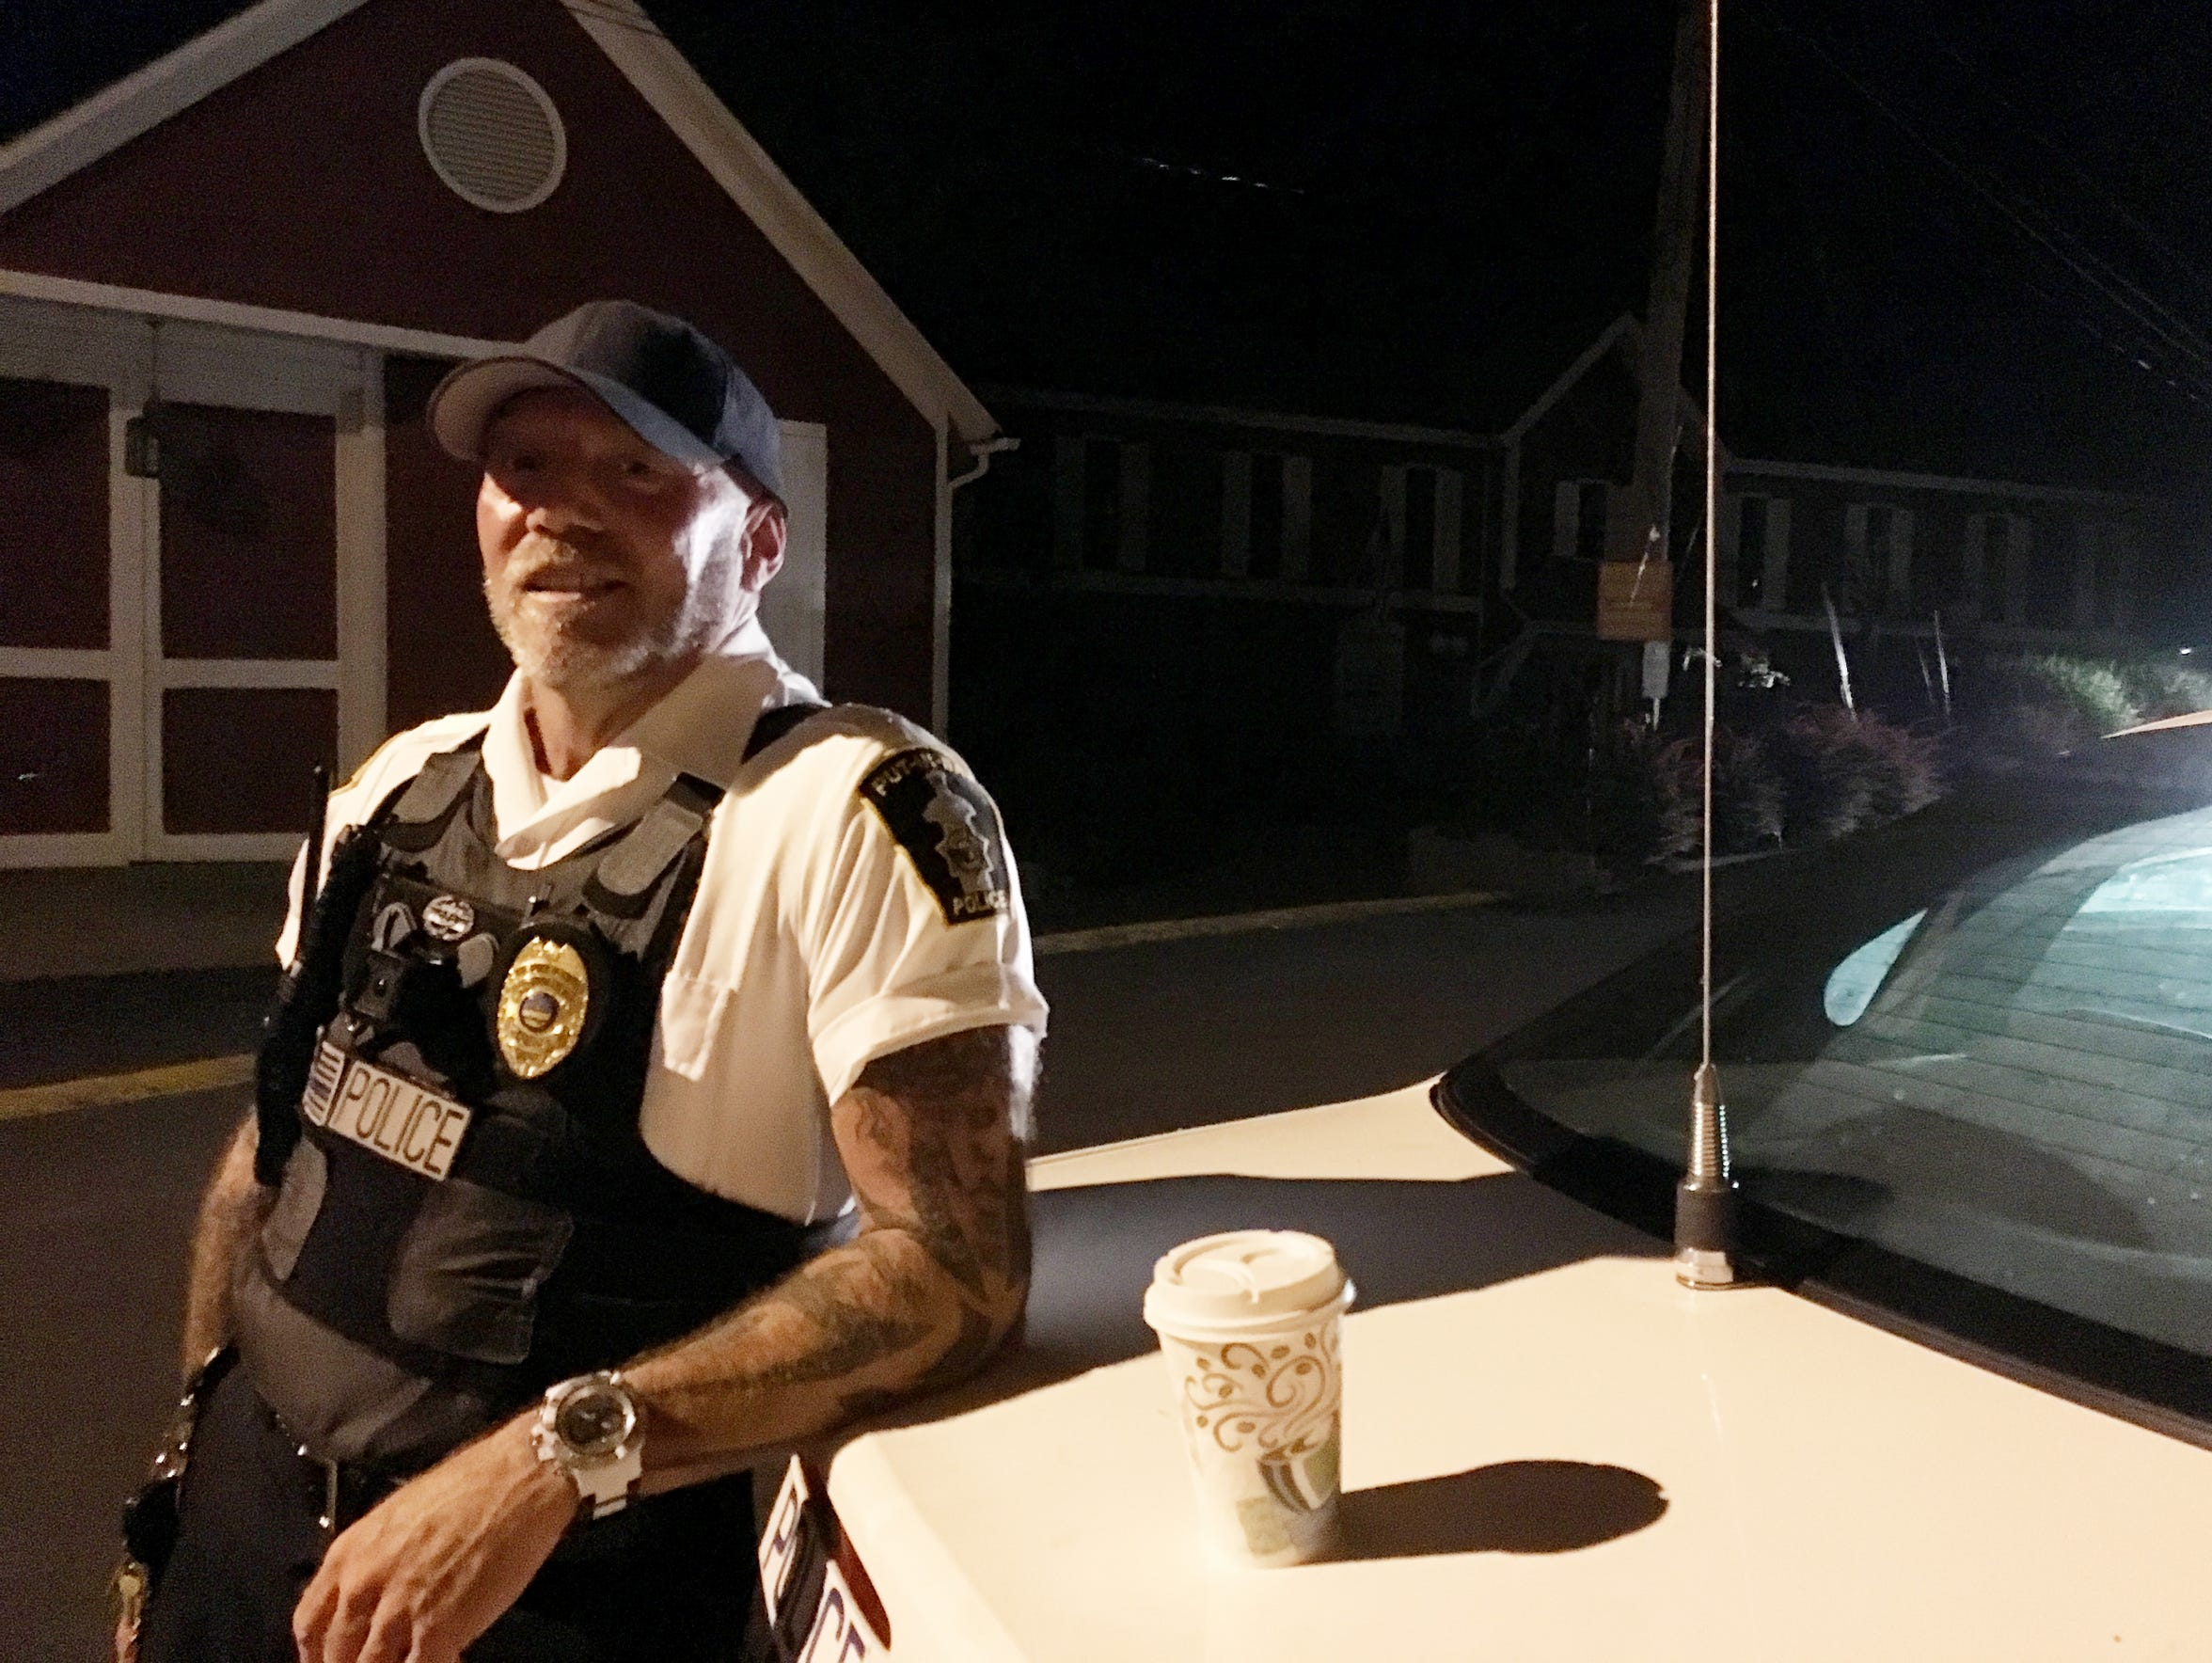 Lt. Doug Miller, a supervisor with the Put-in-Bay Police